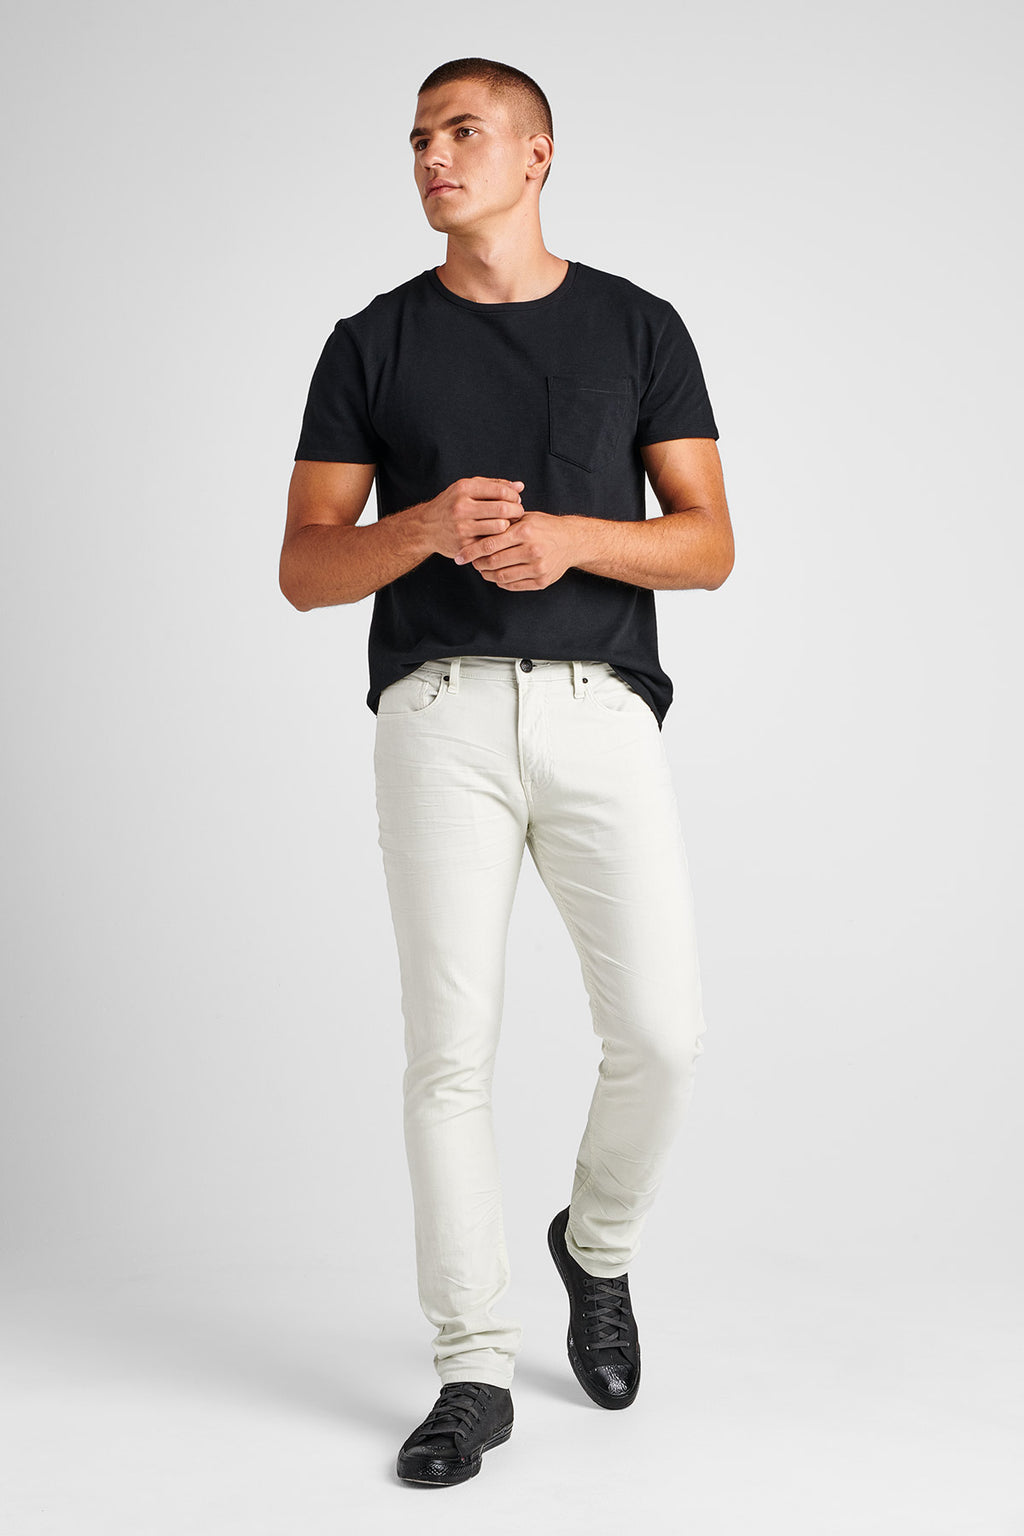 AXL SKINNY TWILL JEAN - DIRTY WHITE - Image 1